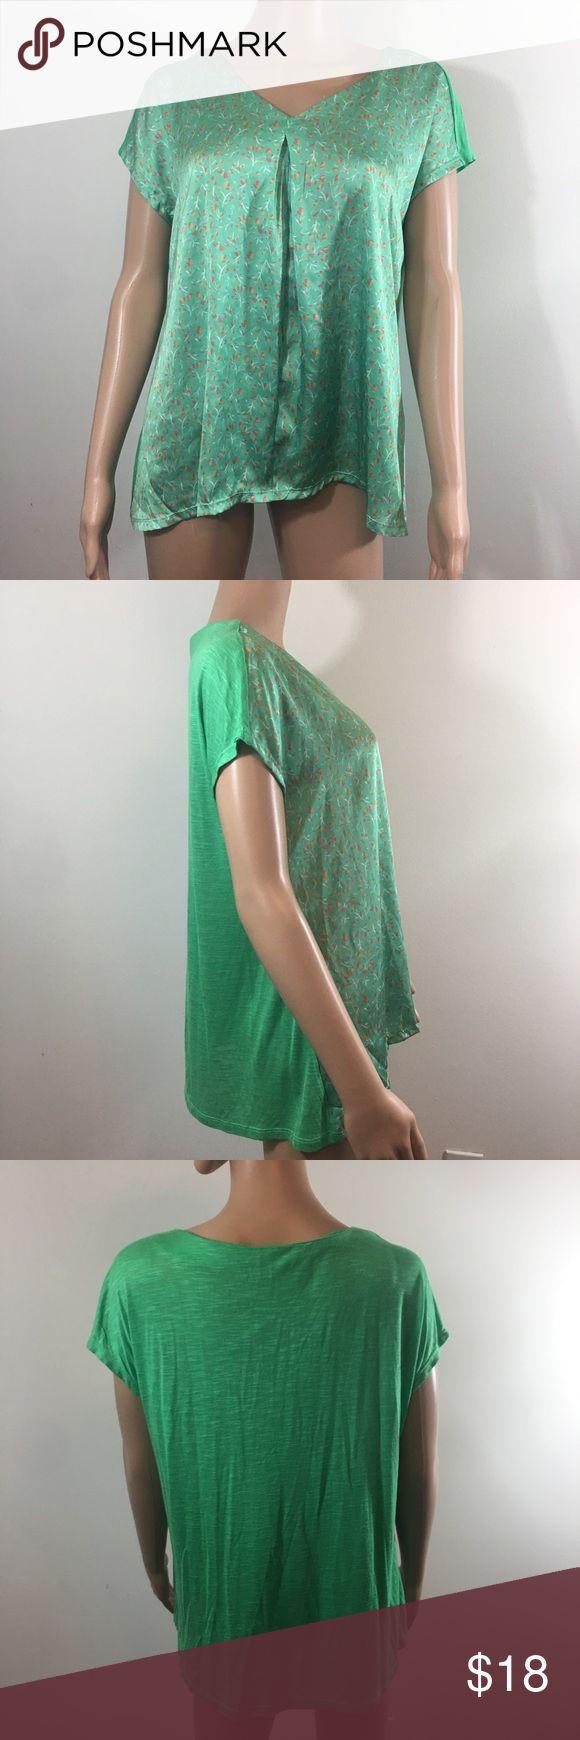 Cortefiel green floral chiffon short sleeve blouse excellent used condition, no stains tears or flaws! please see measurements below.  shoulder to hem-24in    chest(armpit to armpit)-22in   sleeve length- 8in cortefiel Tops Blouses